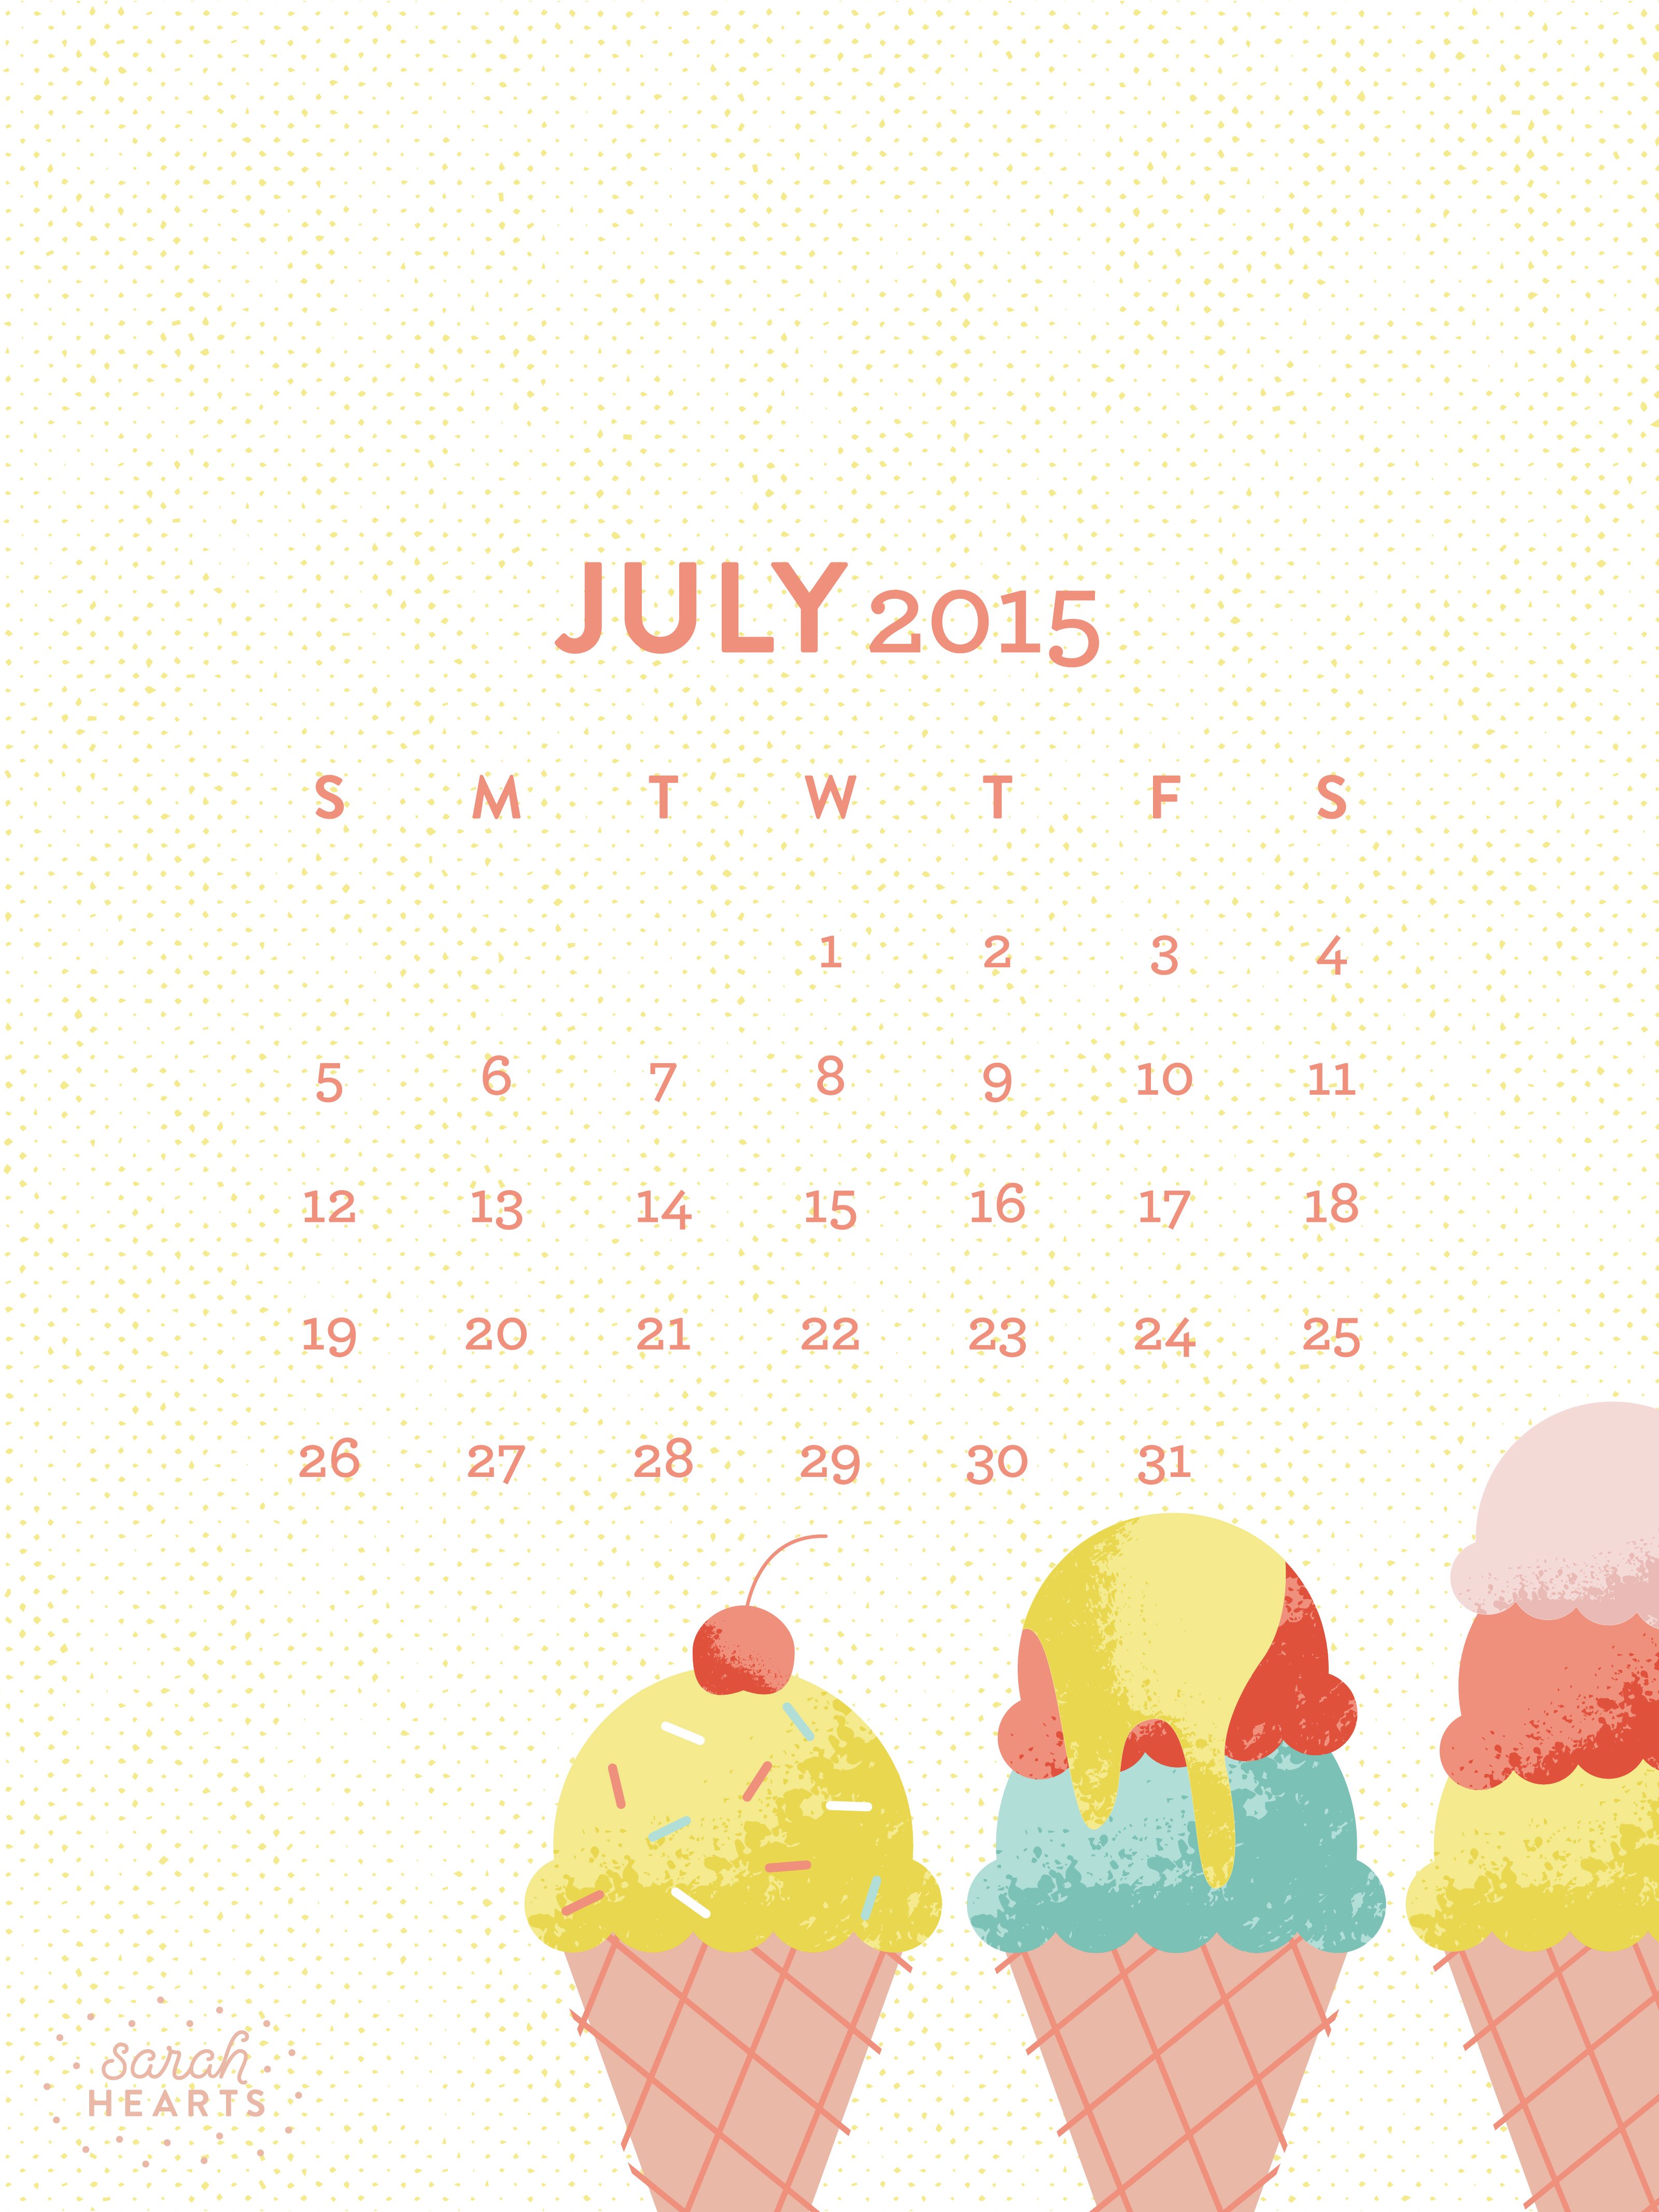 Calendar Wallpaper Ipad : July calendar wallpaper sarah hearts